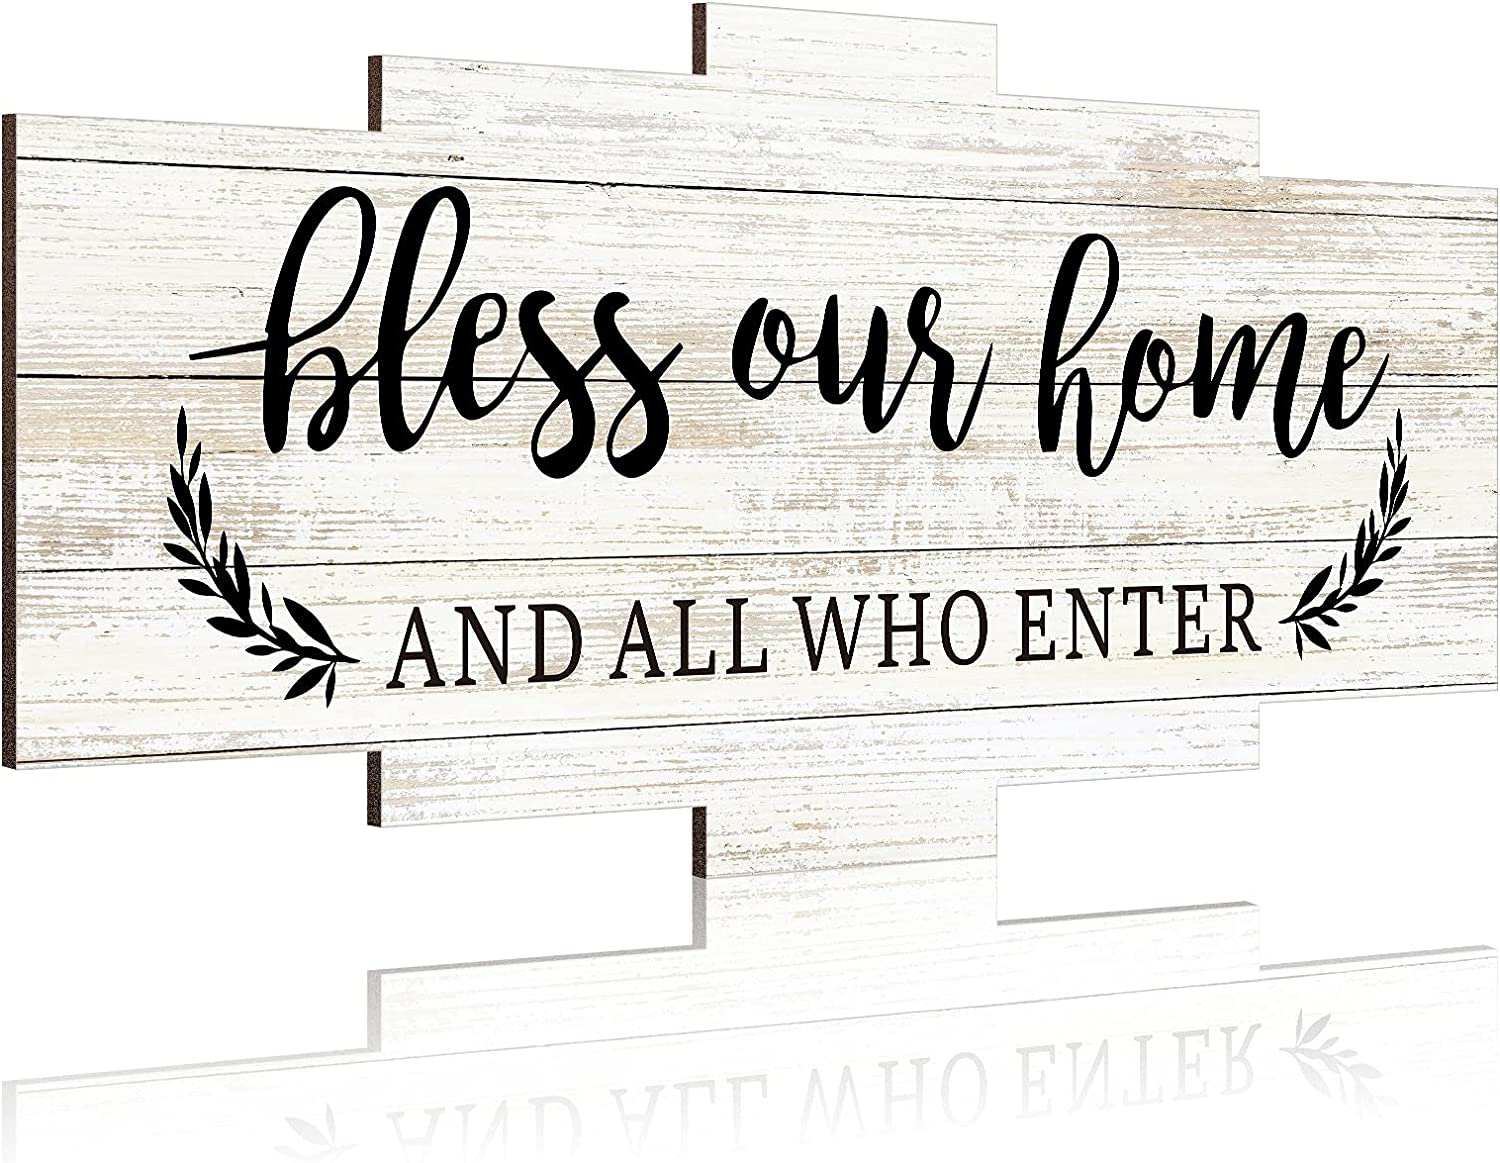 Jetec Bless Our Home Rustic Wall Decor Wood Home Sign, Hanging Wooden Home Sign, Rustic Wood Wall Sign Decoration Wooden Wall Art Sign for Bedroom, Wall Decor for Living Room Kitchen